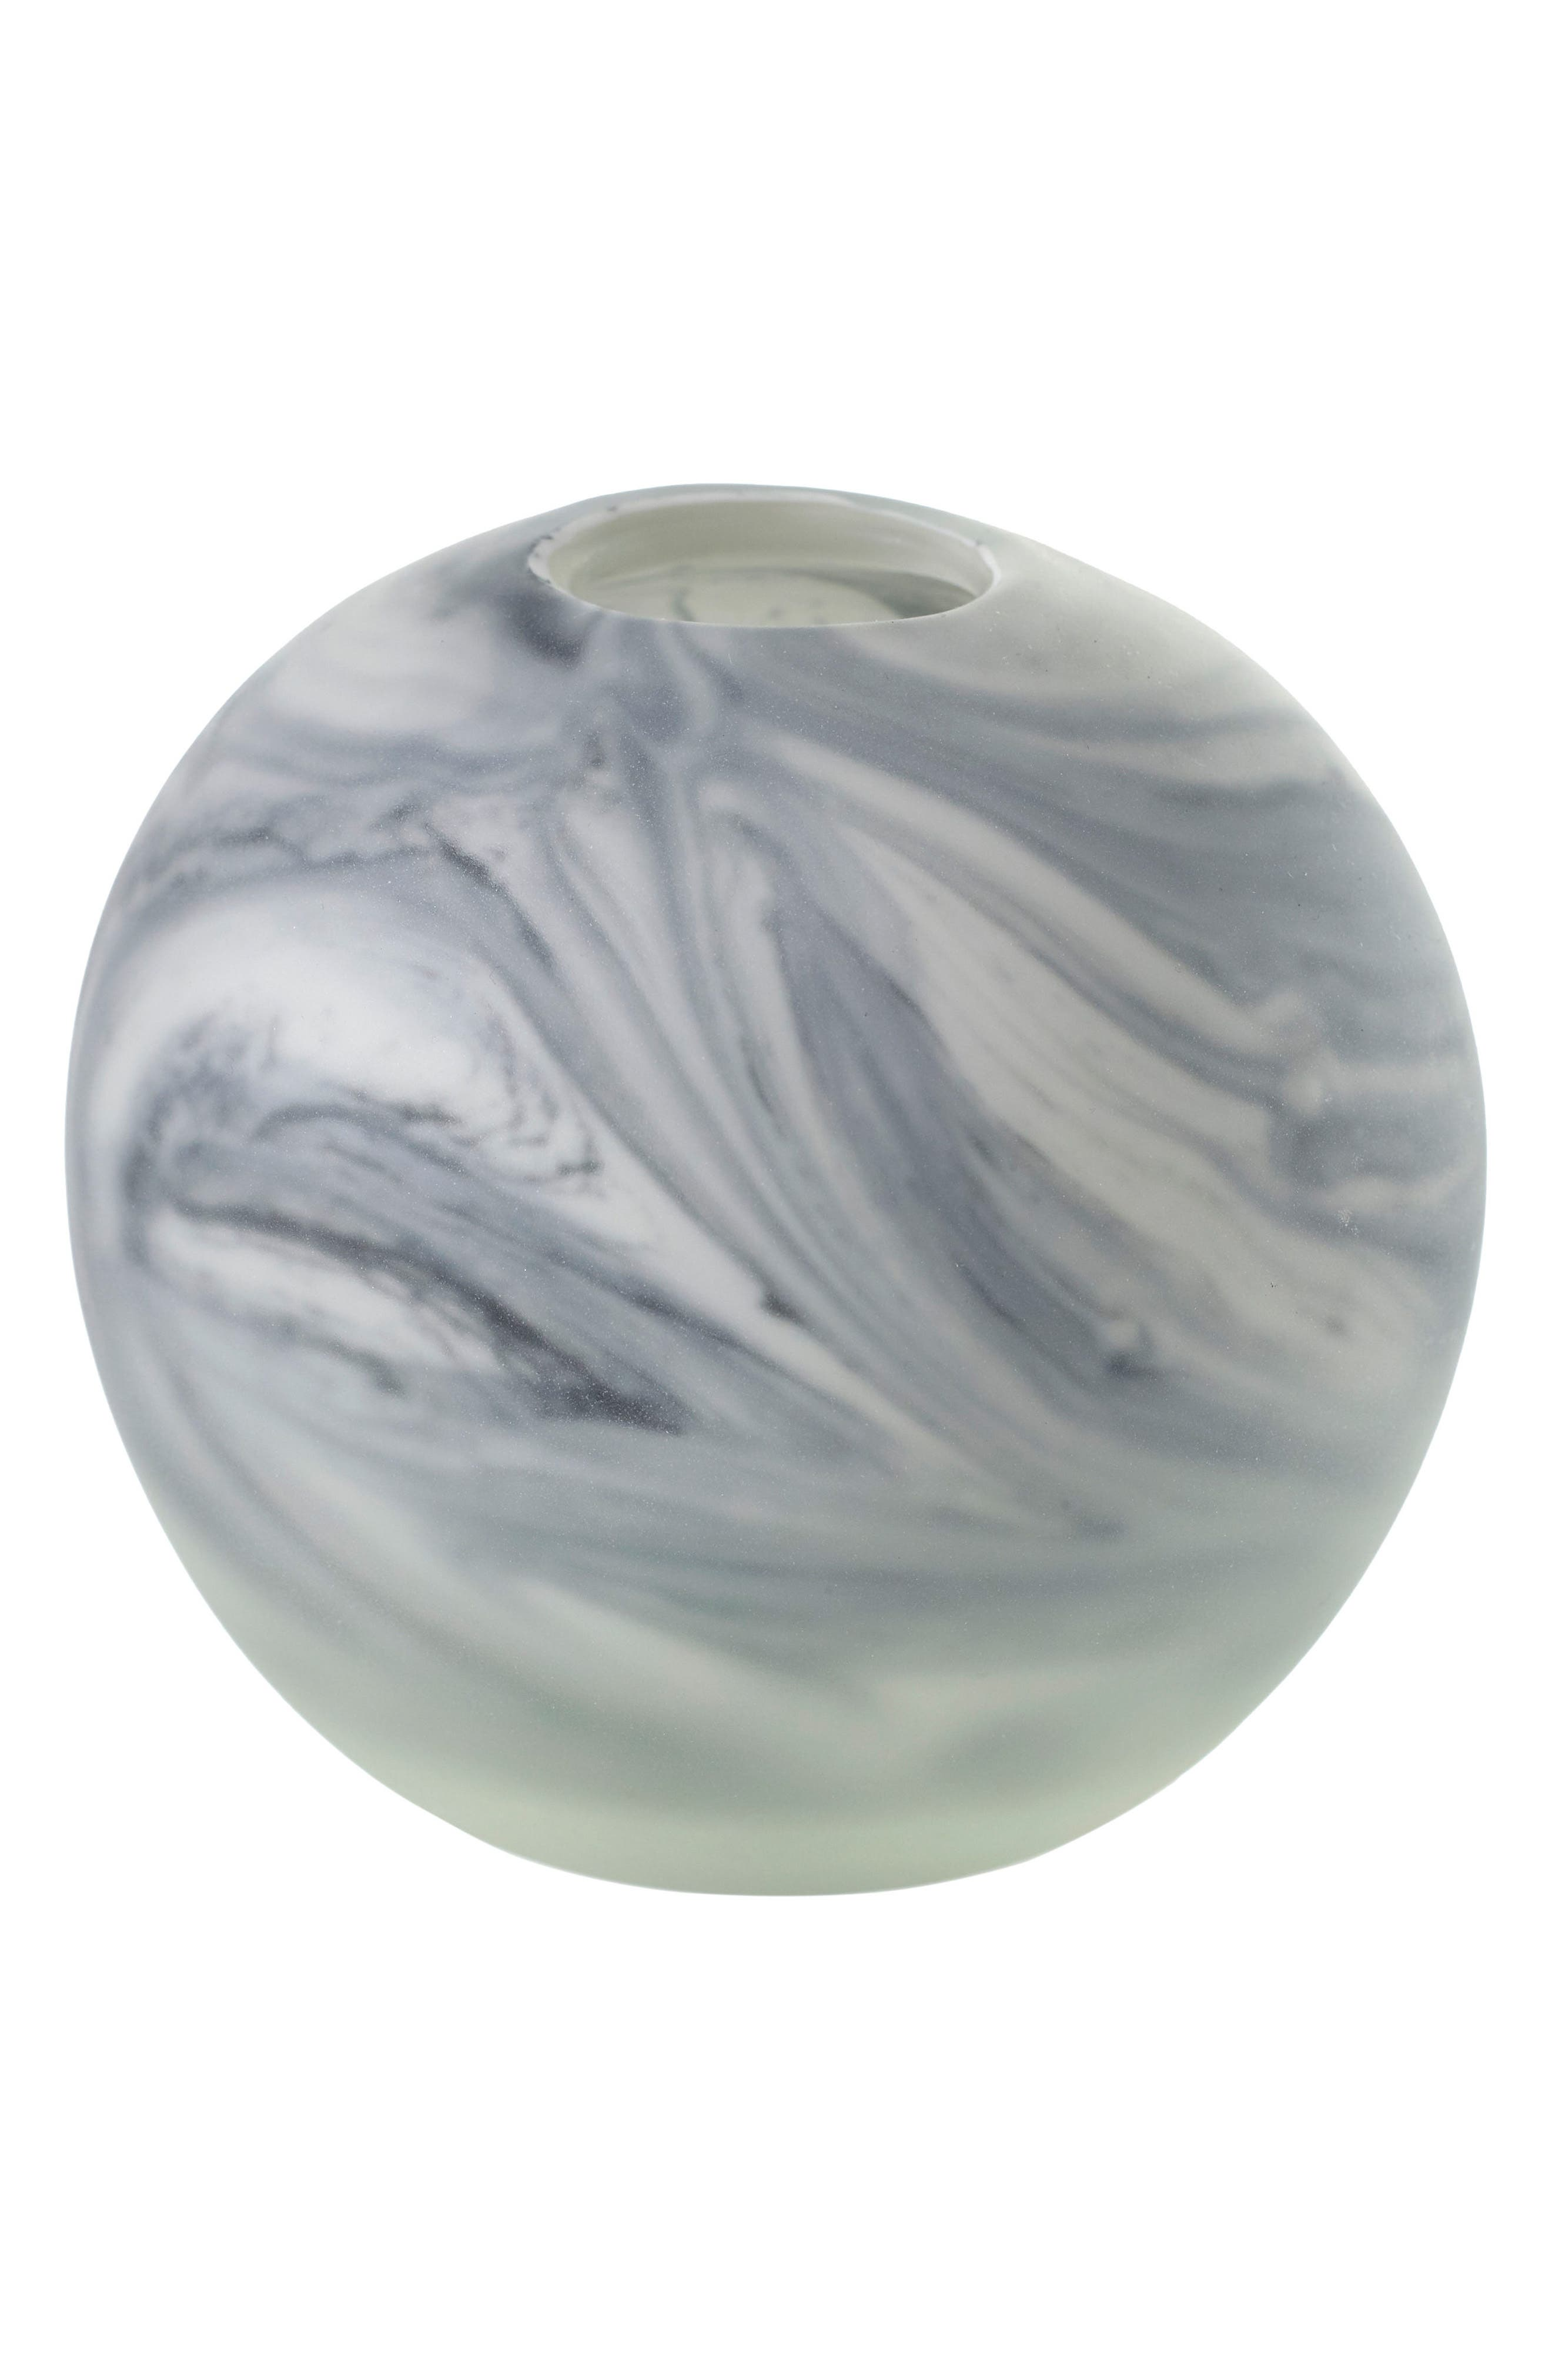 Alternate Image 1 Selected - Accent Decor Novelle Vase